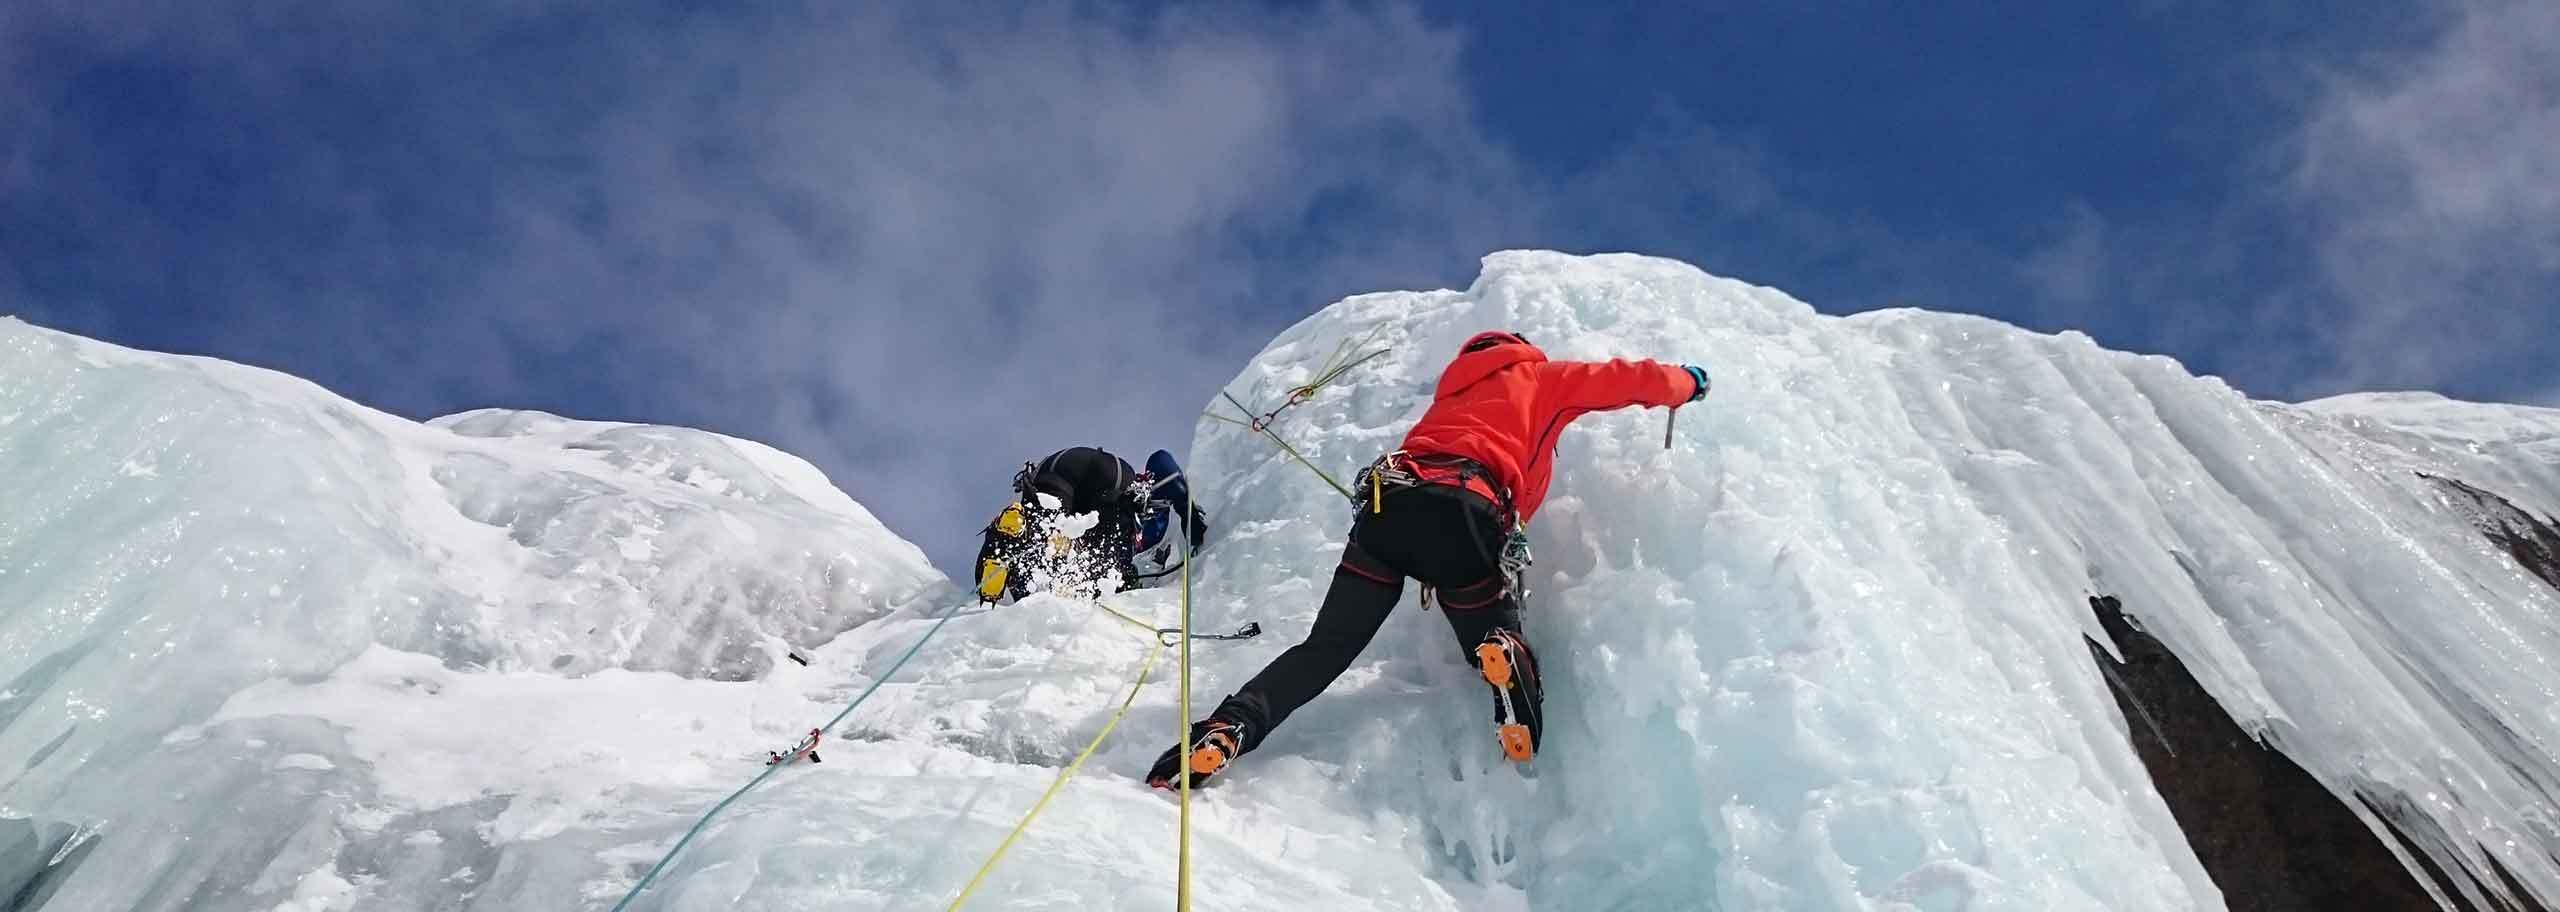 Ice Climbing in Alagna with a Mountain Guide